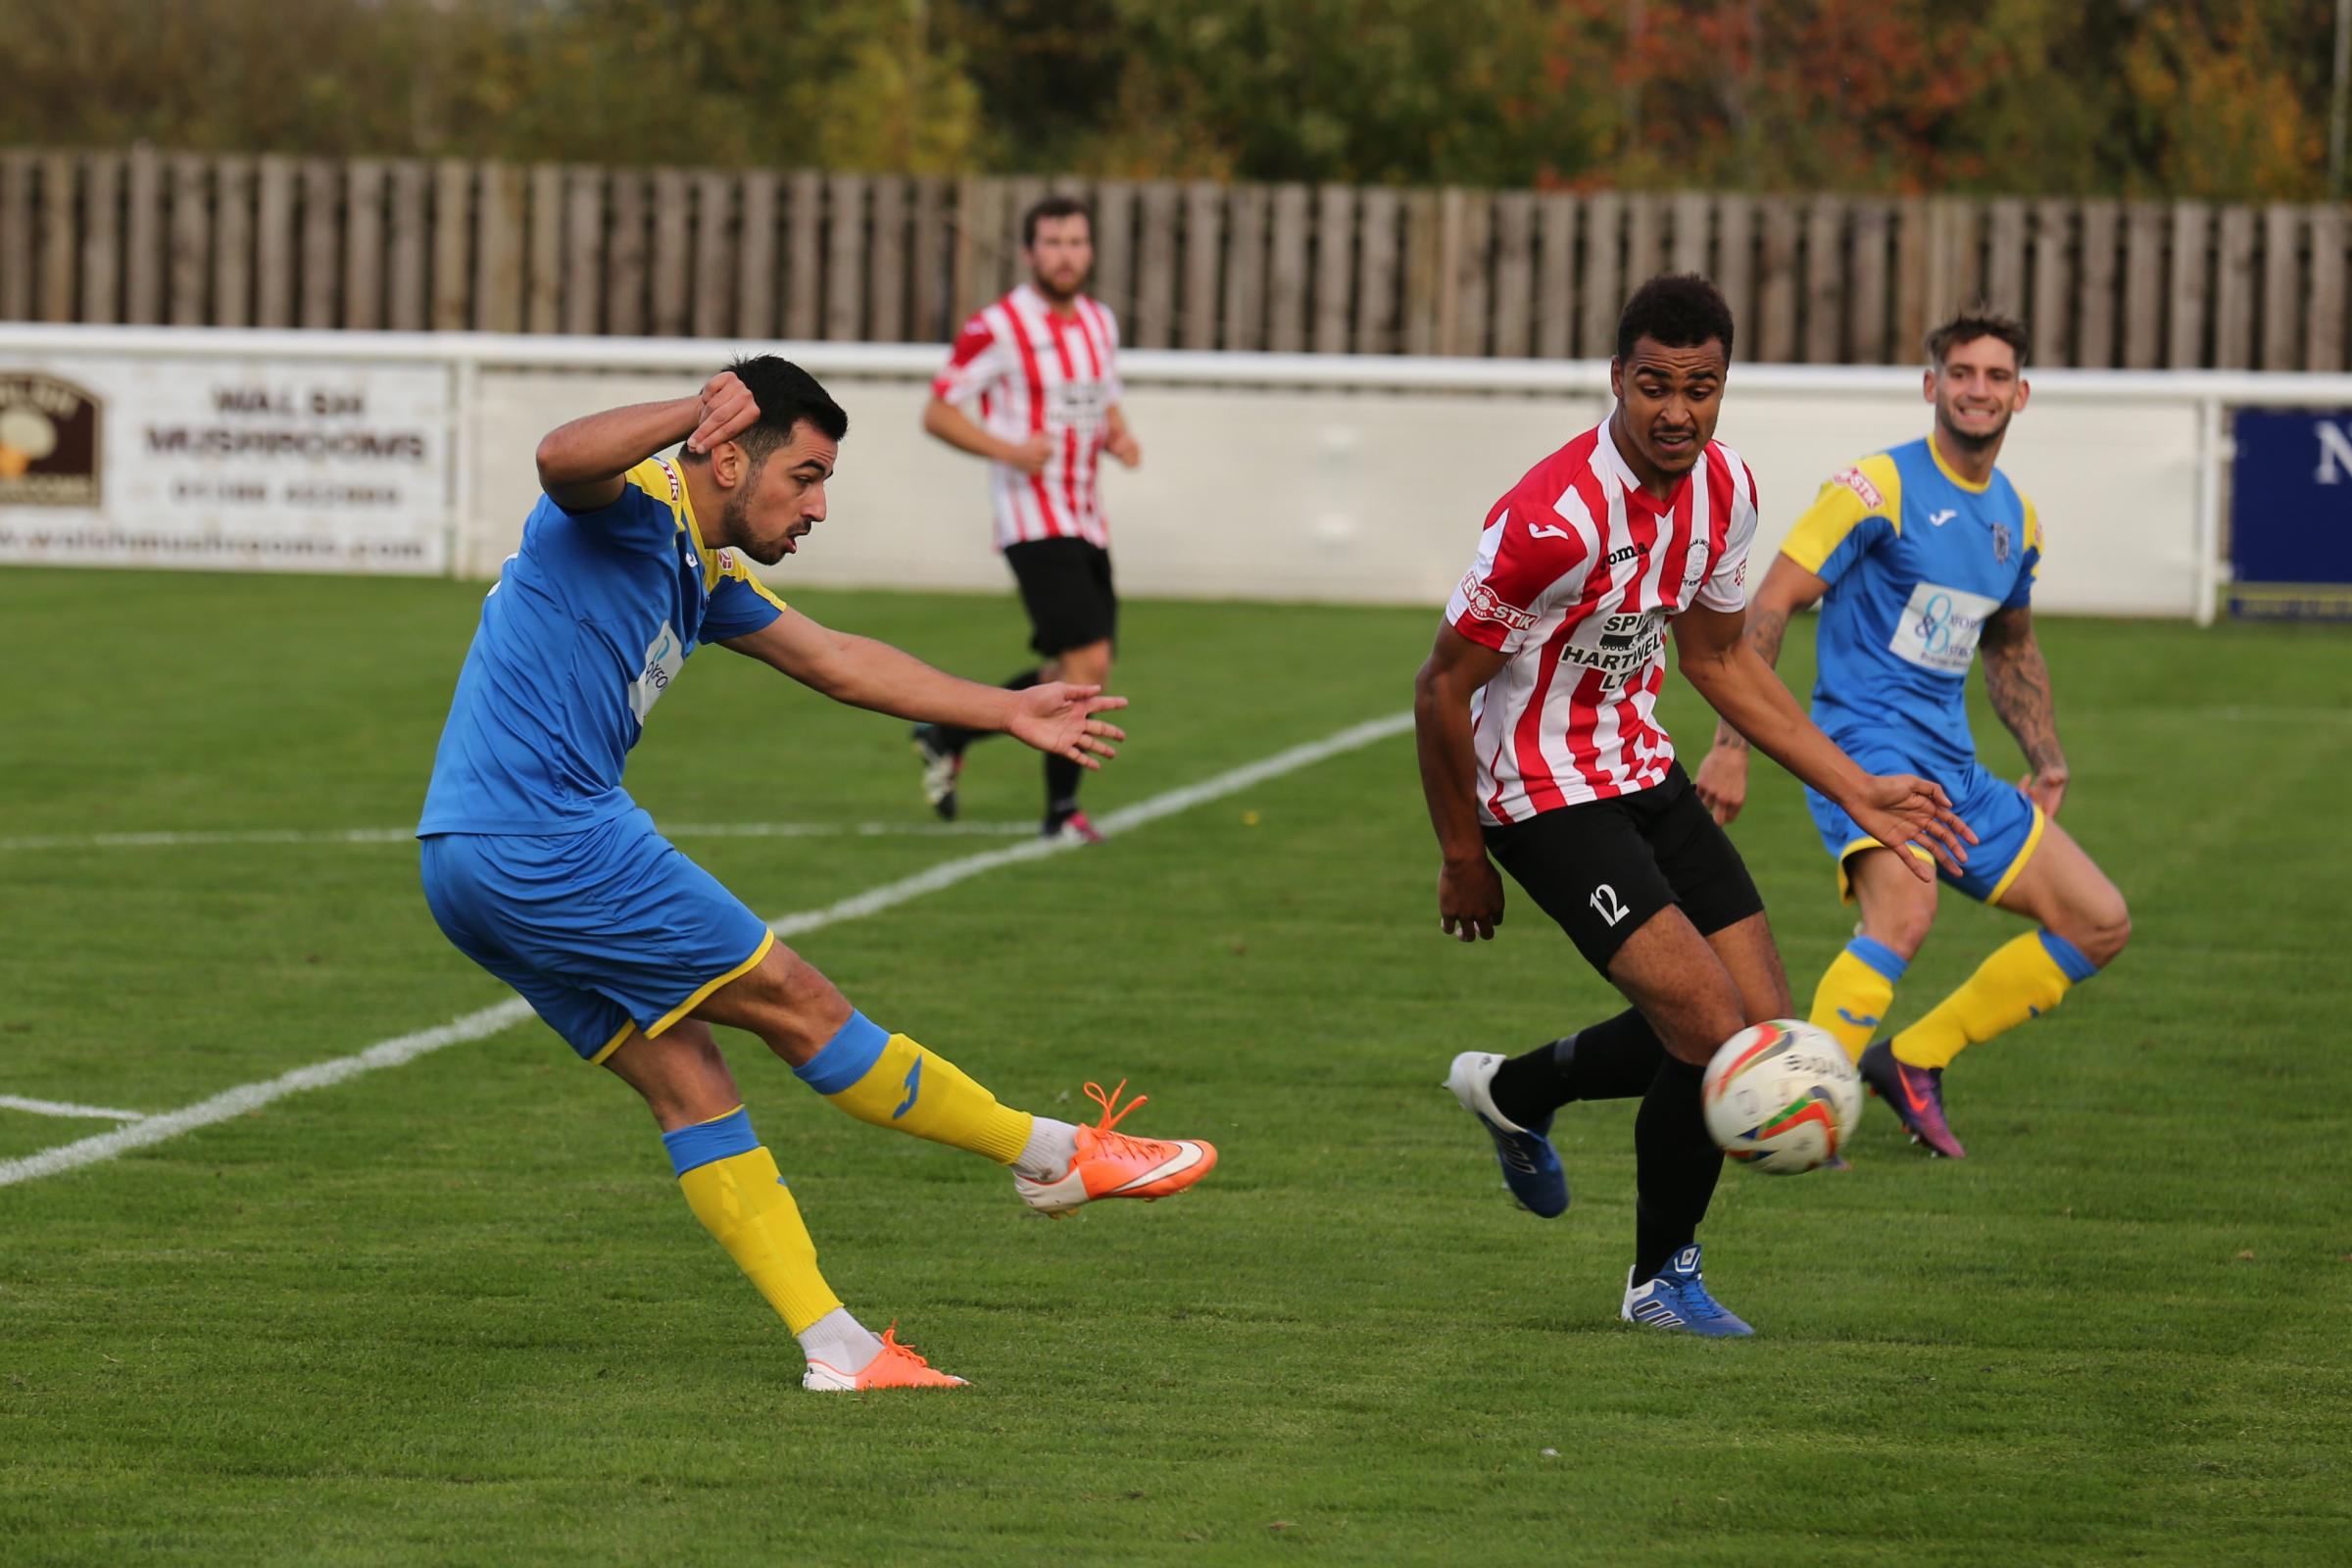 Felipe Barcelos scored two penalties for Didcot Town